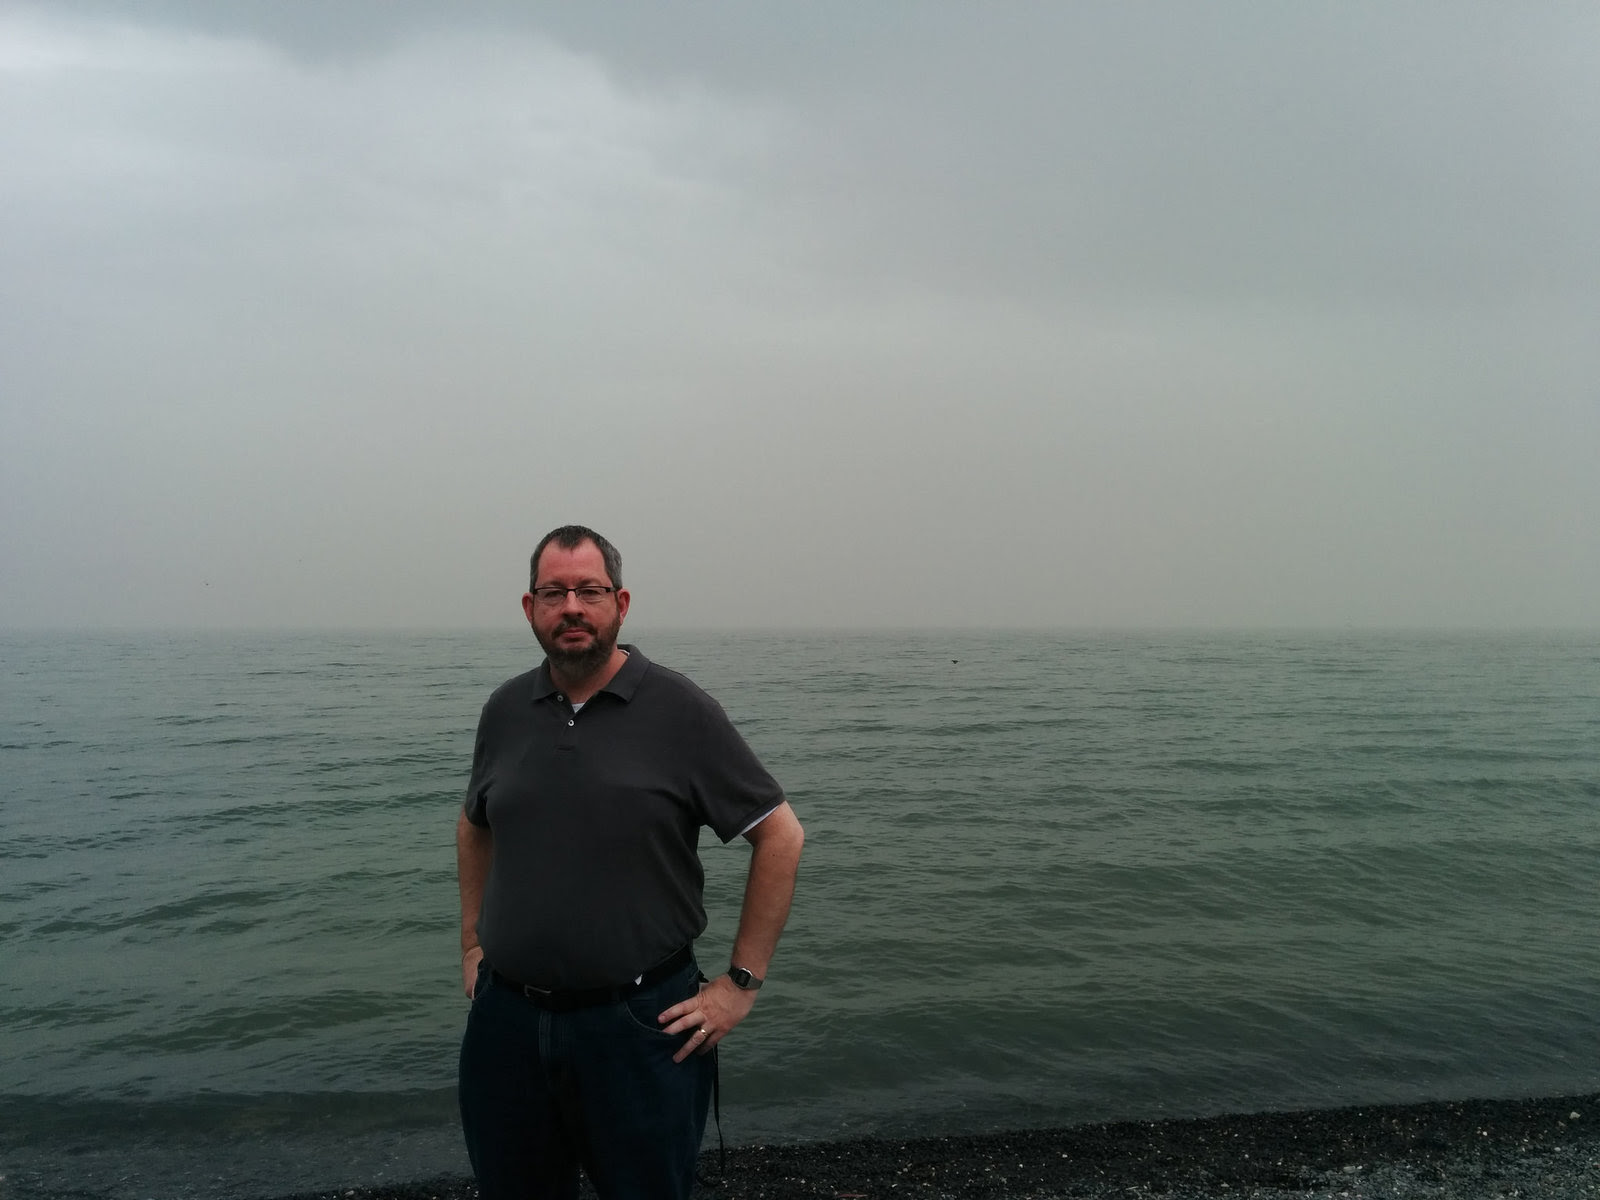 Me and the Sea of Galilee